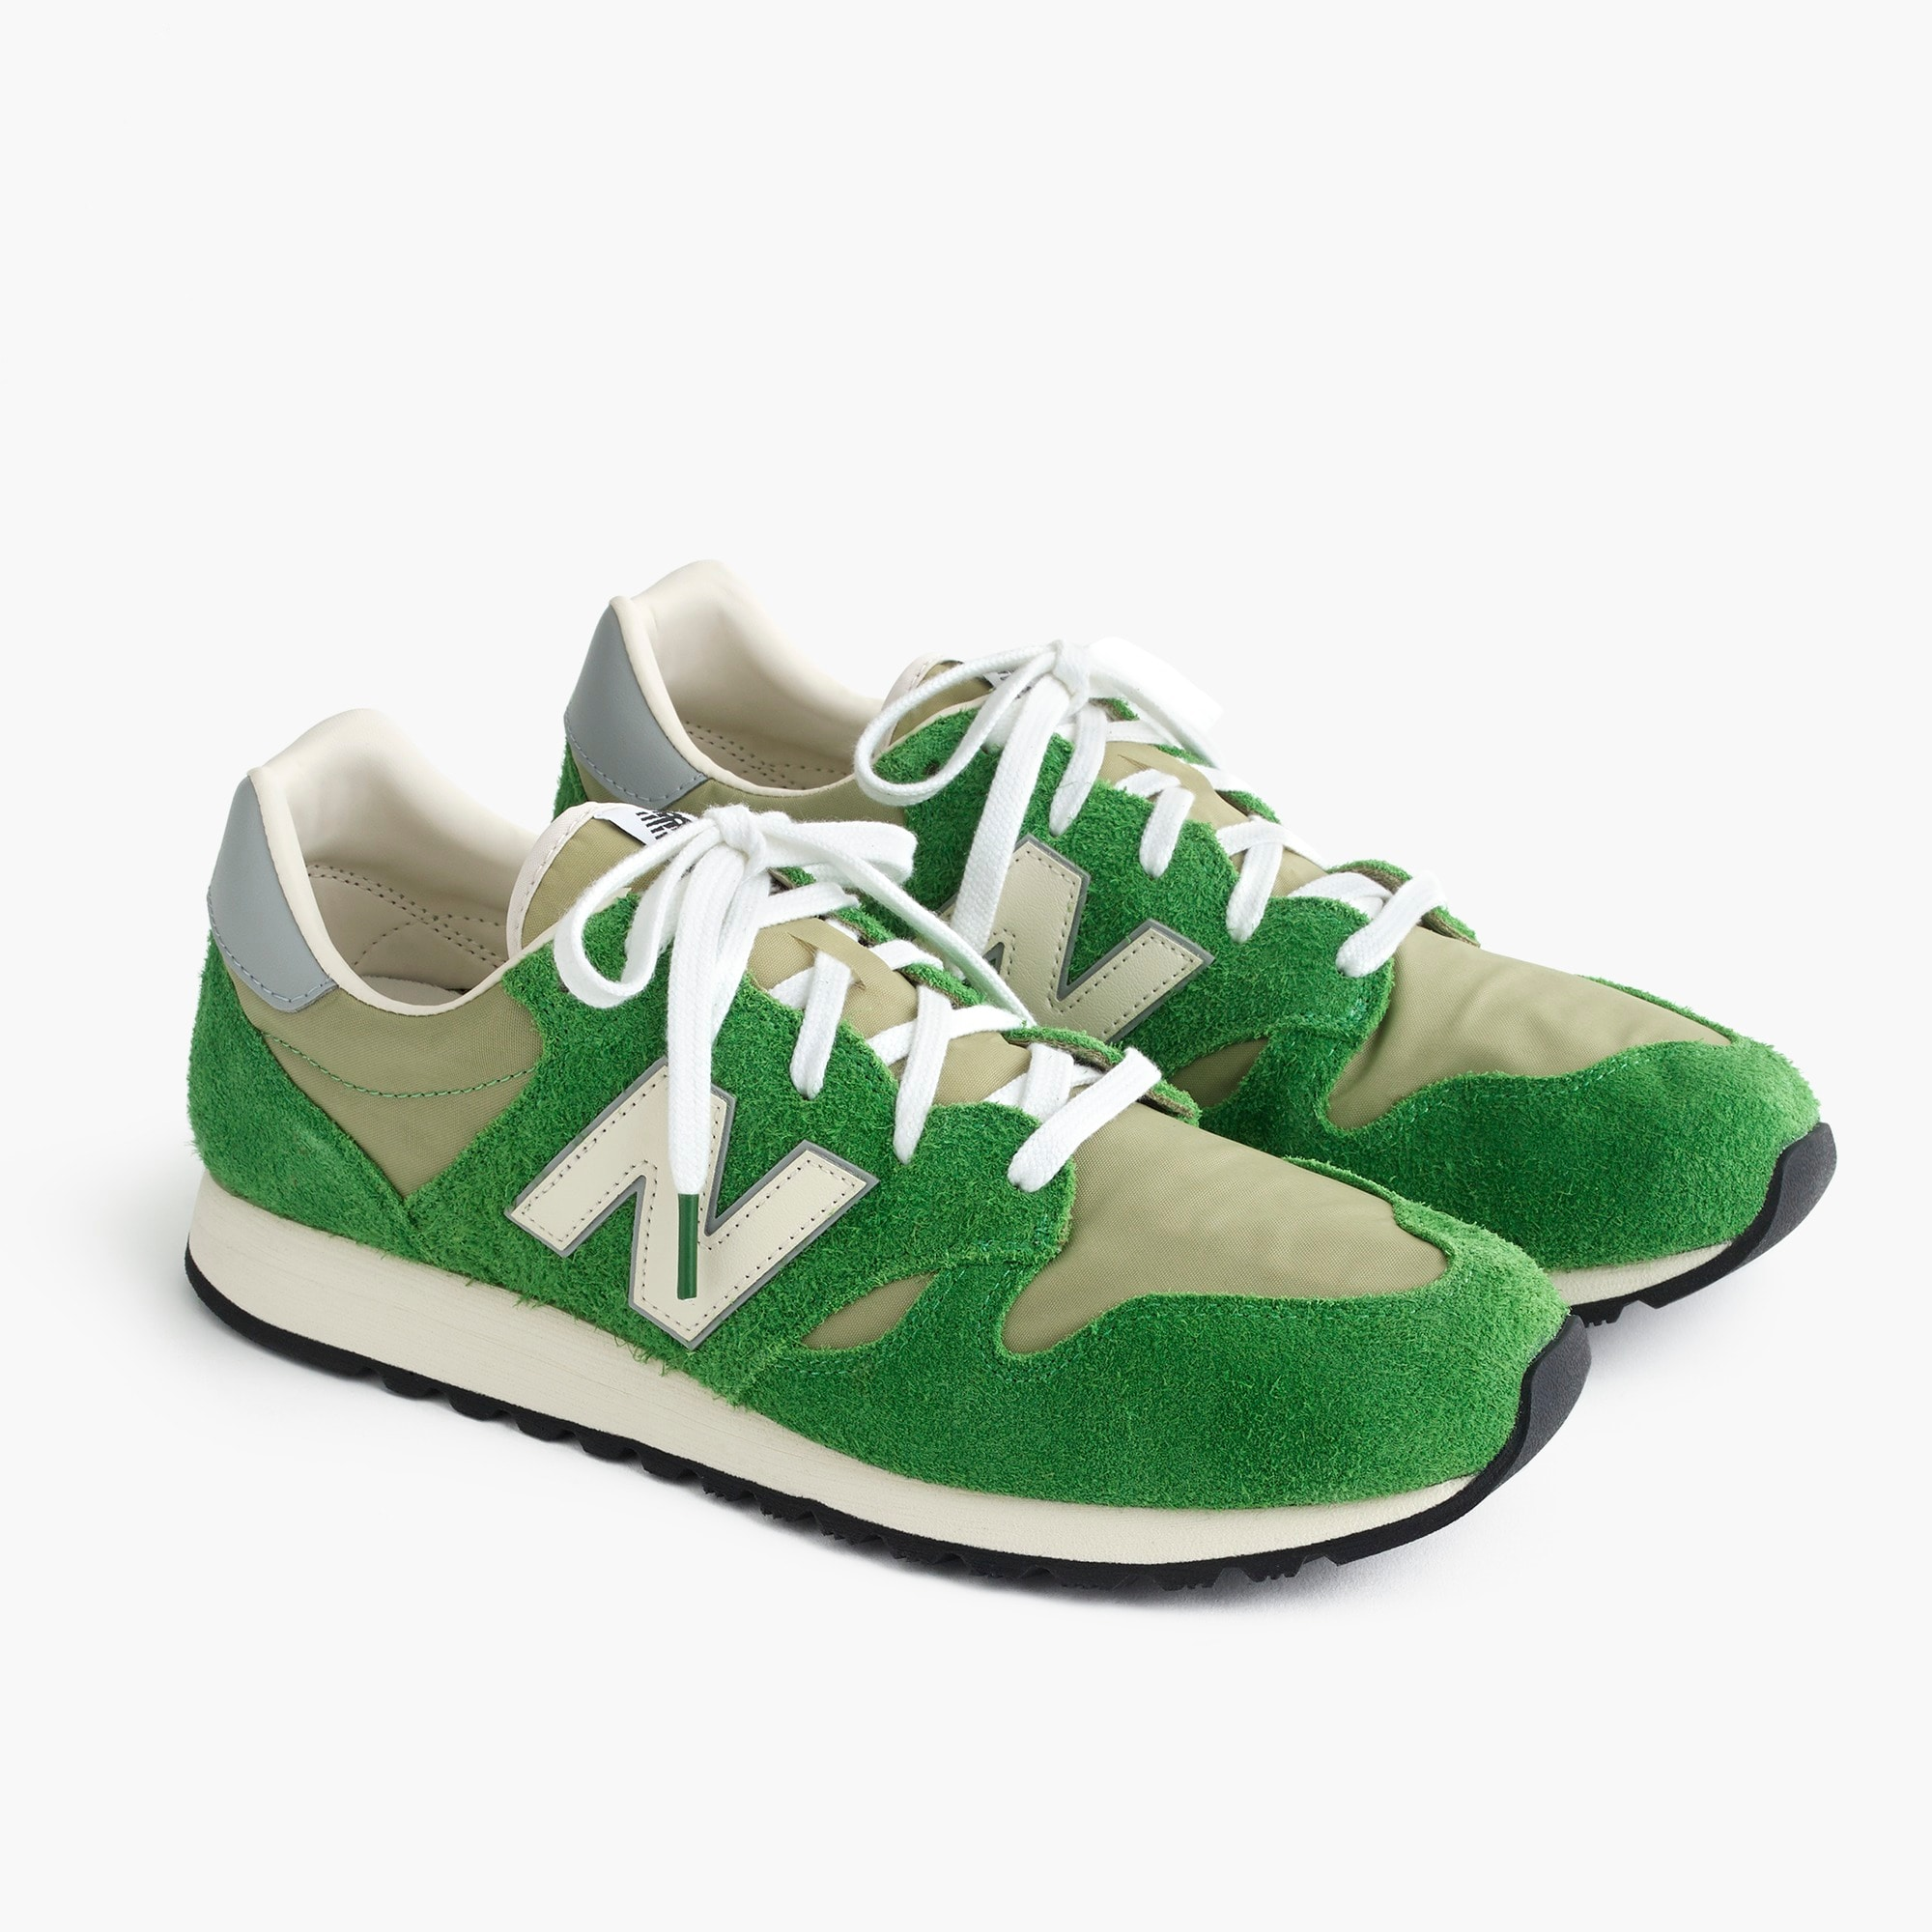 New Balance® for J.Crew 520 sneakers in hairy suede